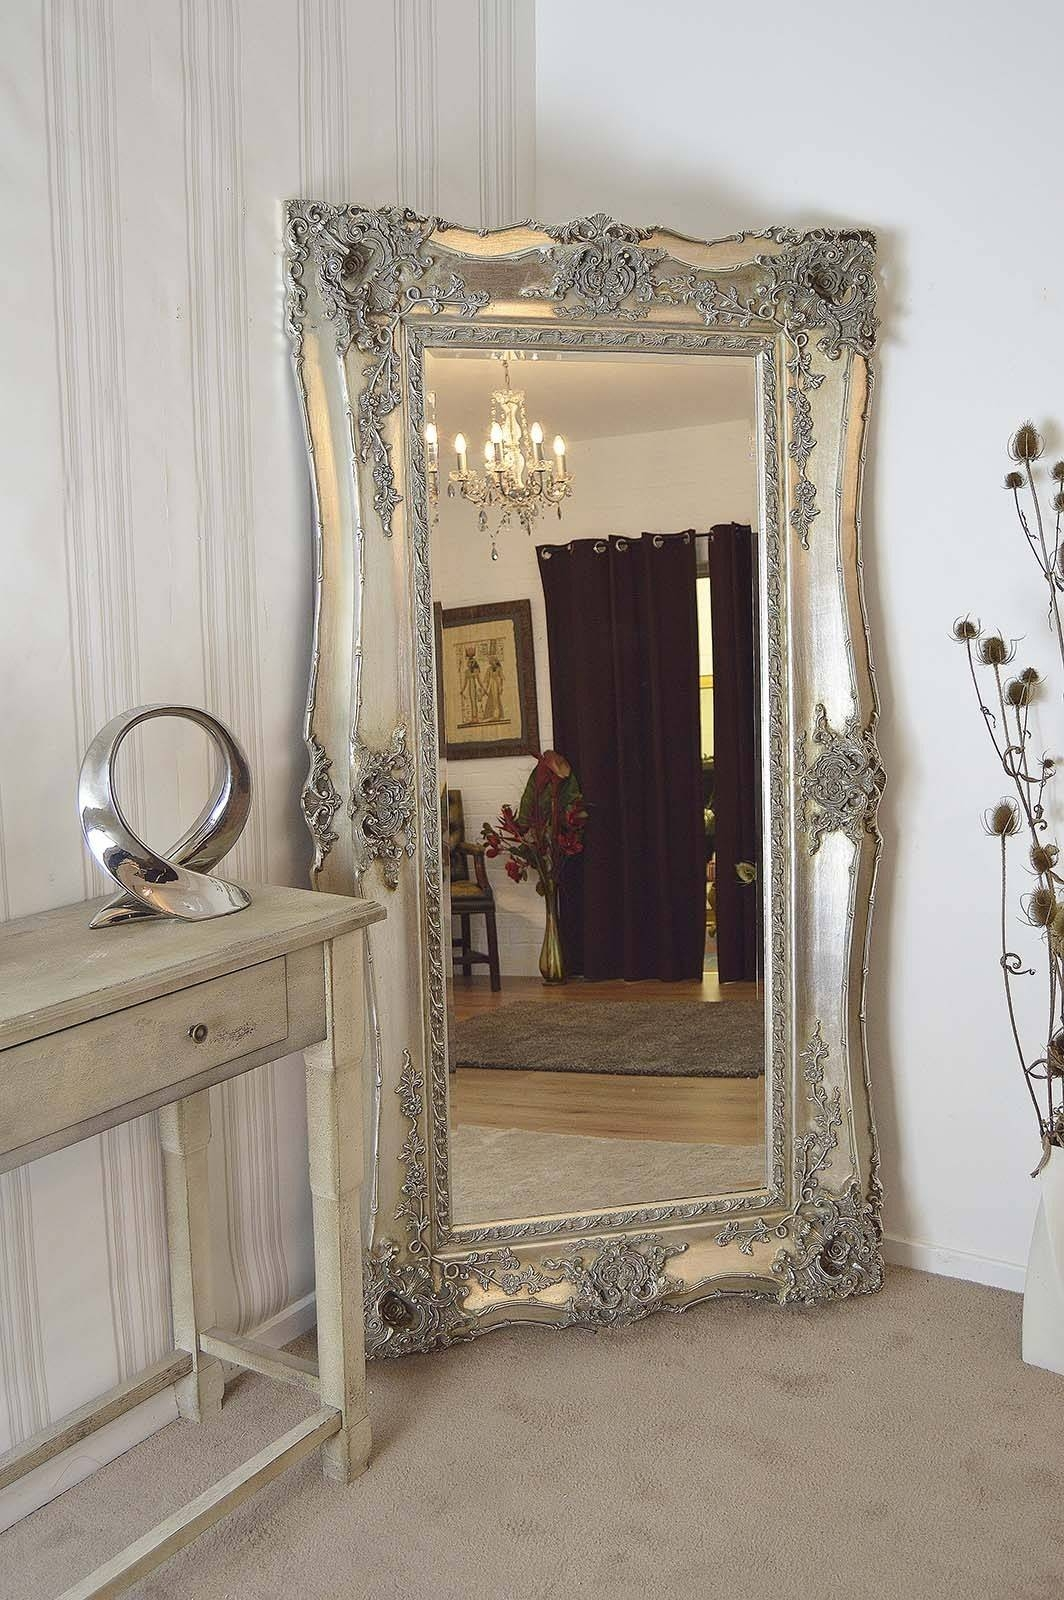 Homeware: Oval Full Length Standing Mirror | Large Floor Mirrors intended for Oversized Antique Mirrors (Image 14 of 15)